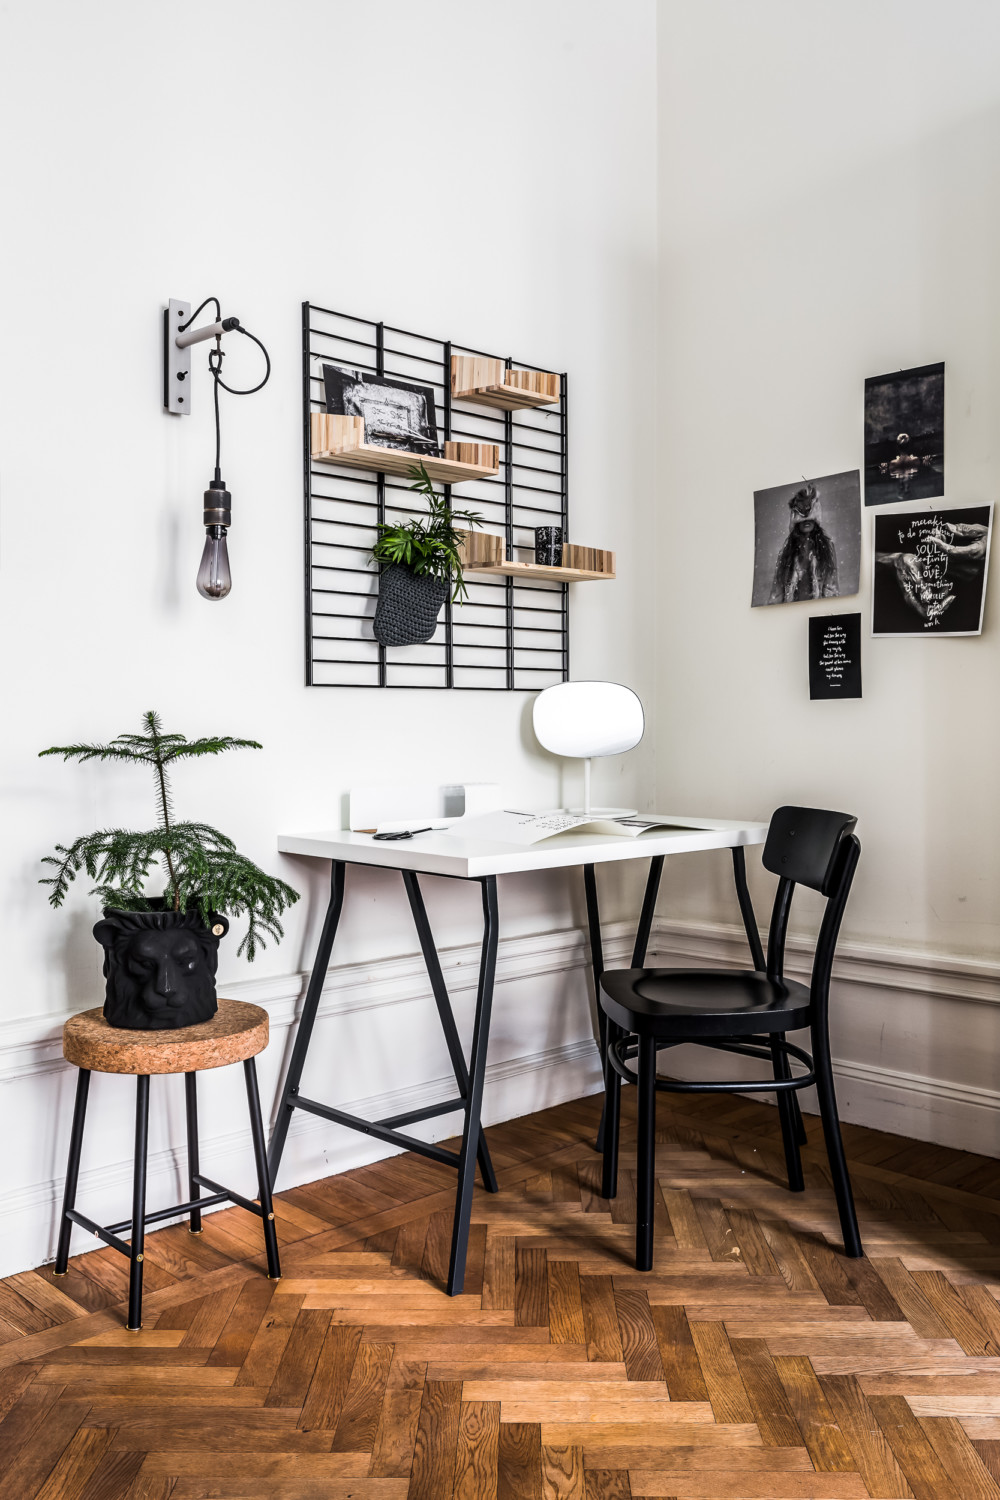 worskpace, home office, design work table, scandinavian interior, houseplant